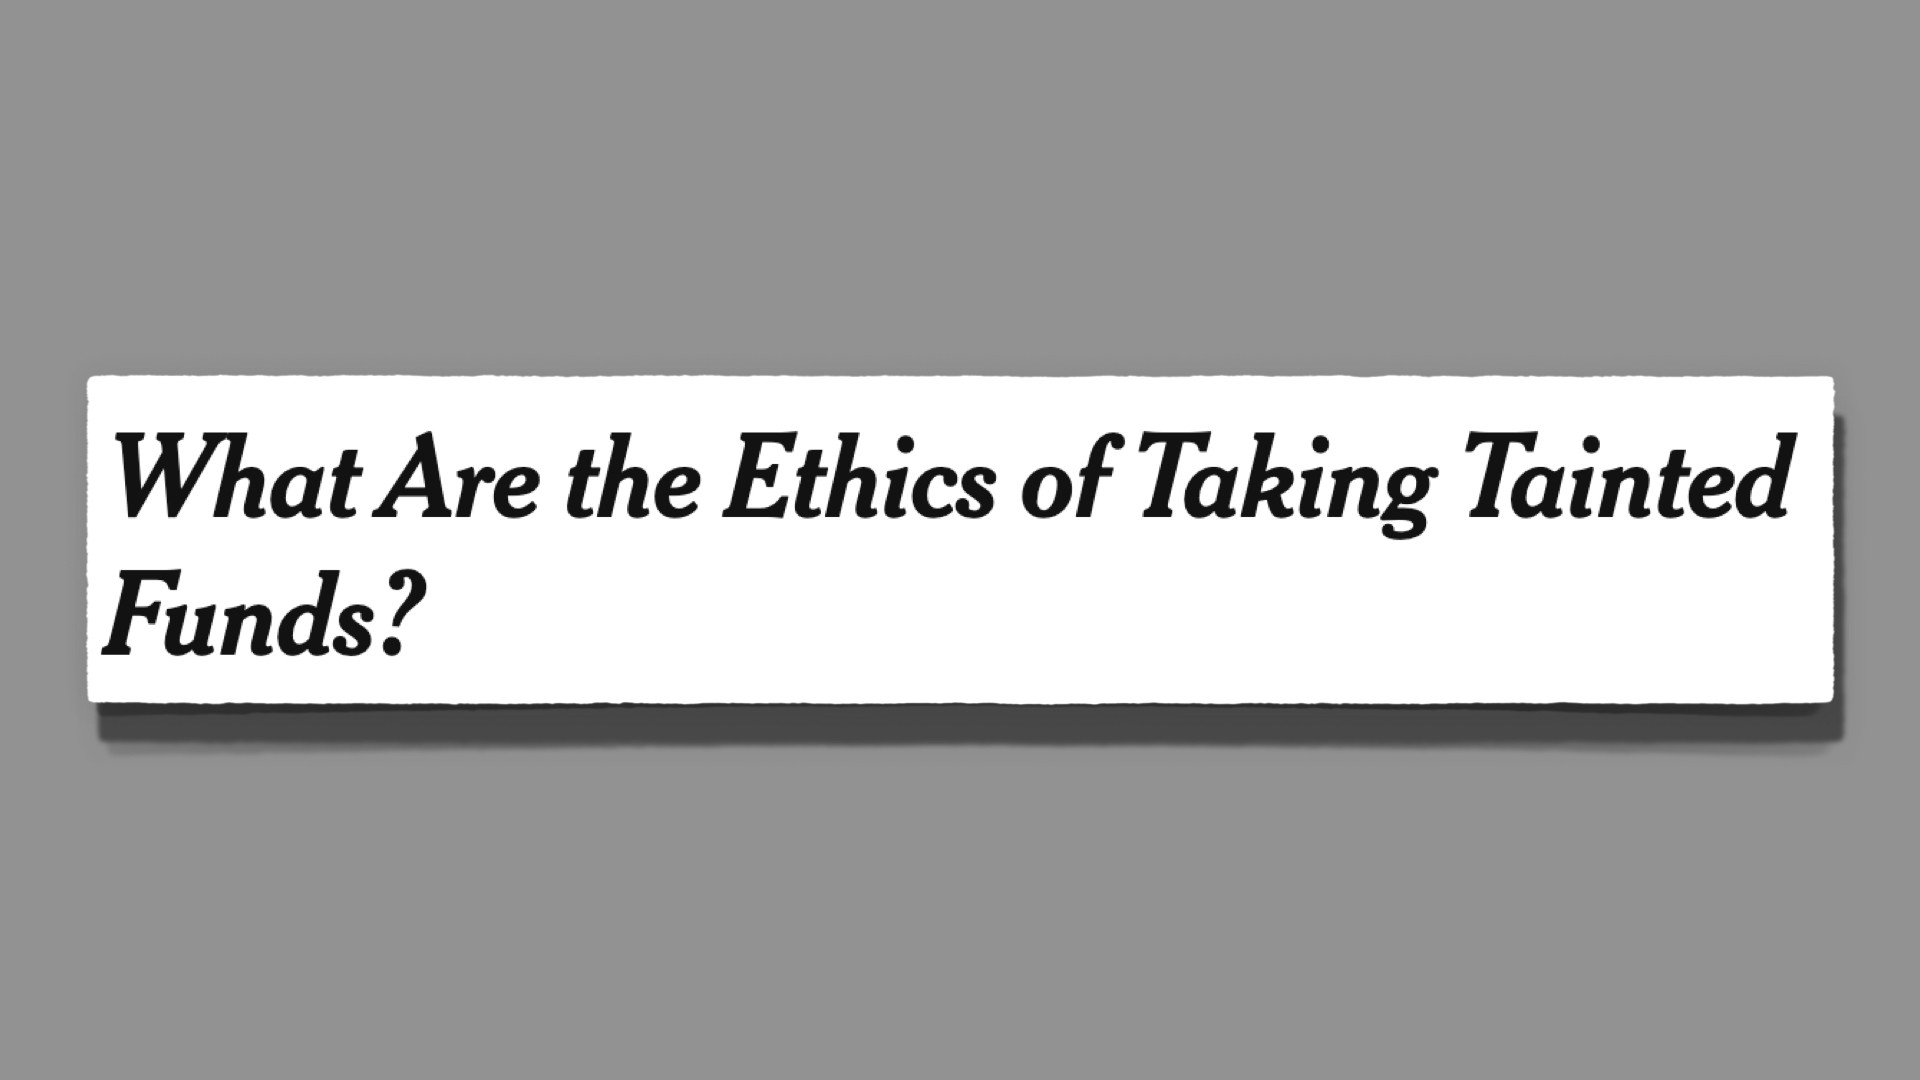 New Headline: What are the Ethics of Taking Tainted funds?